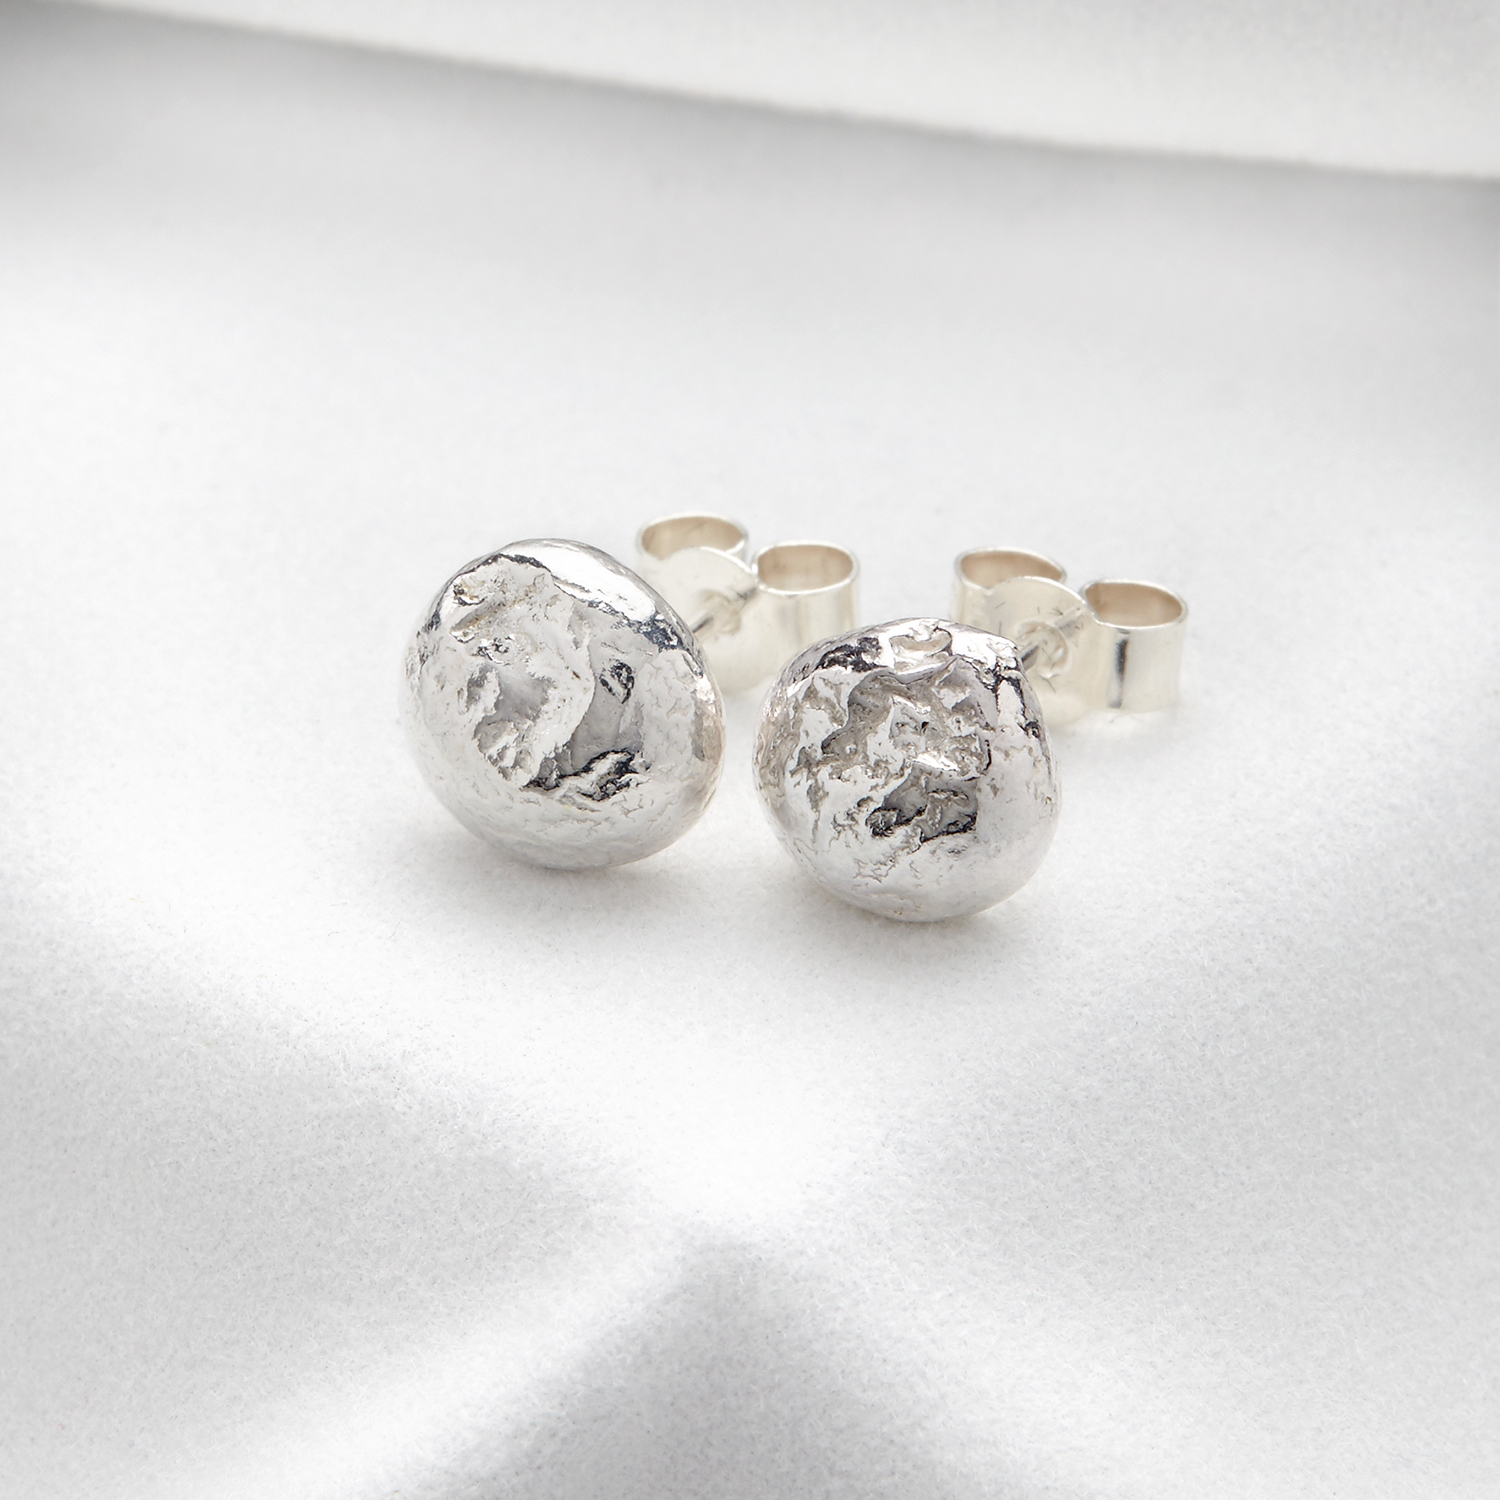 Splash stud earrings